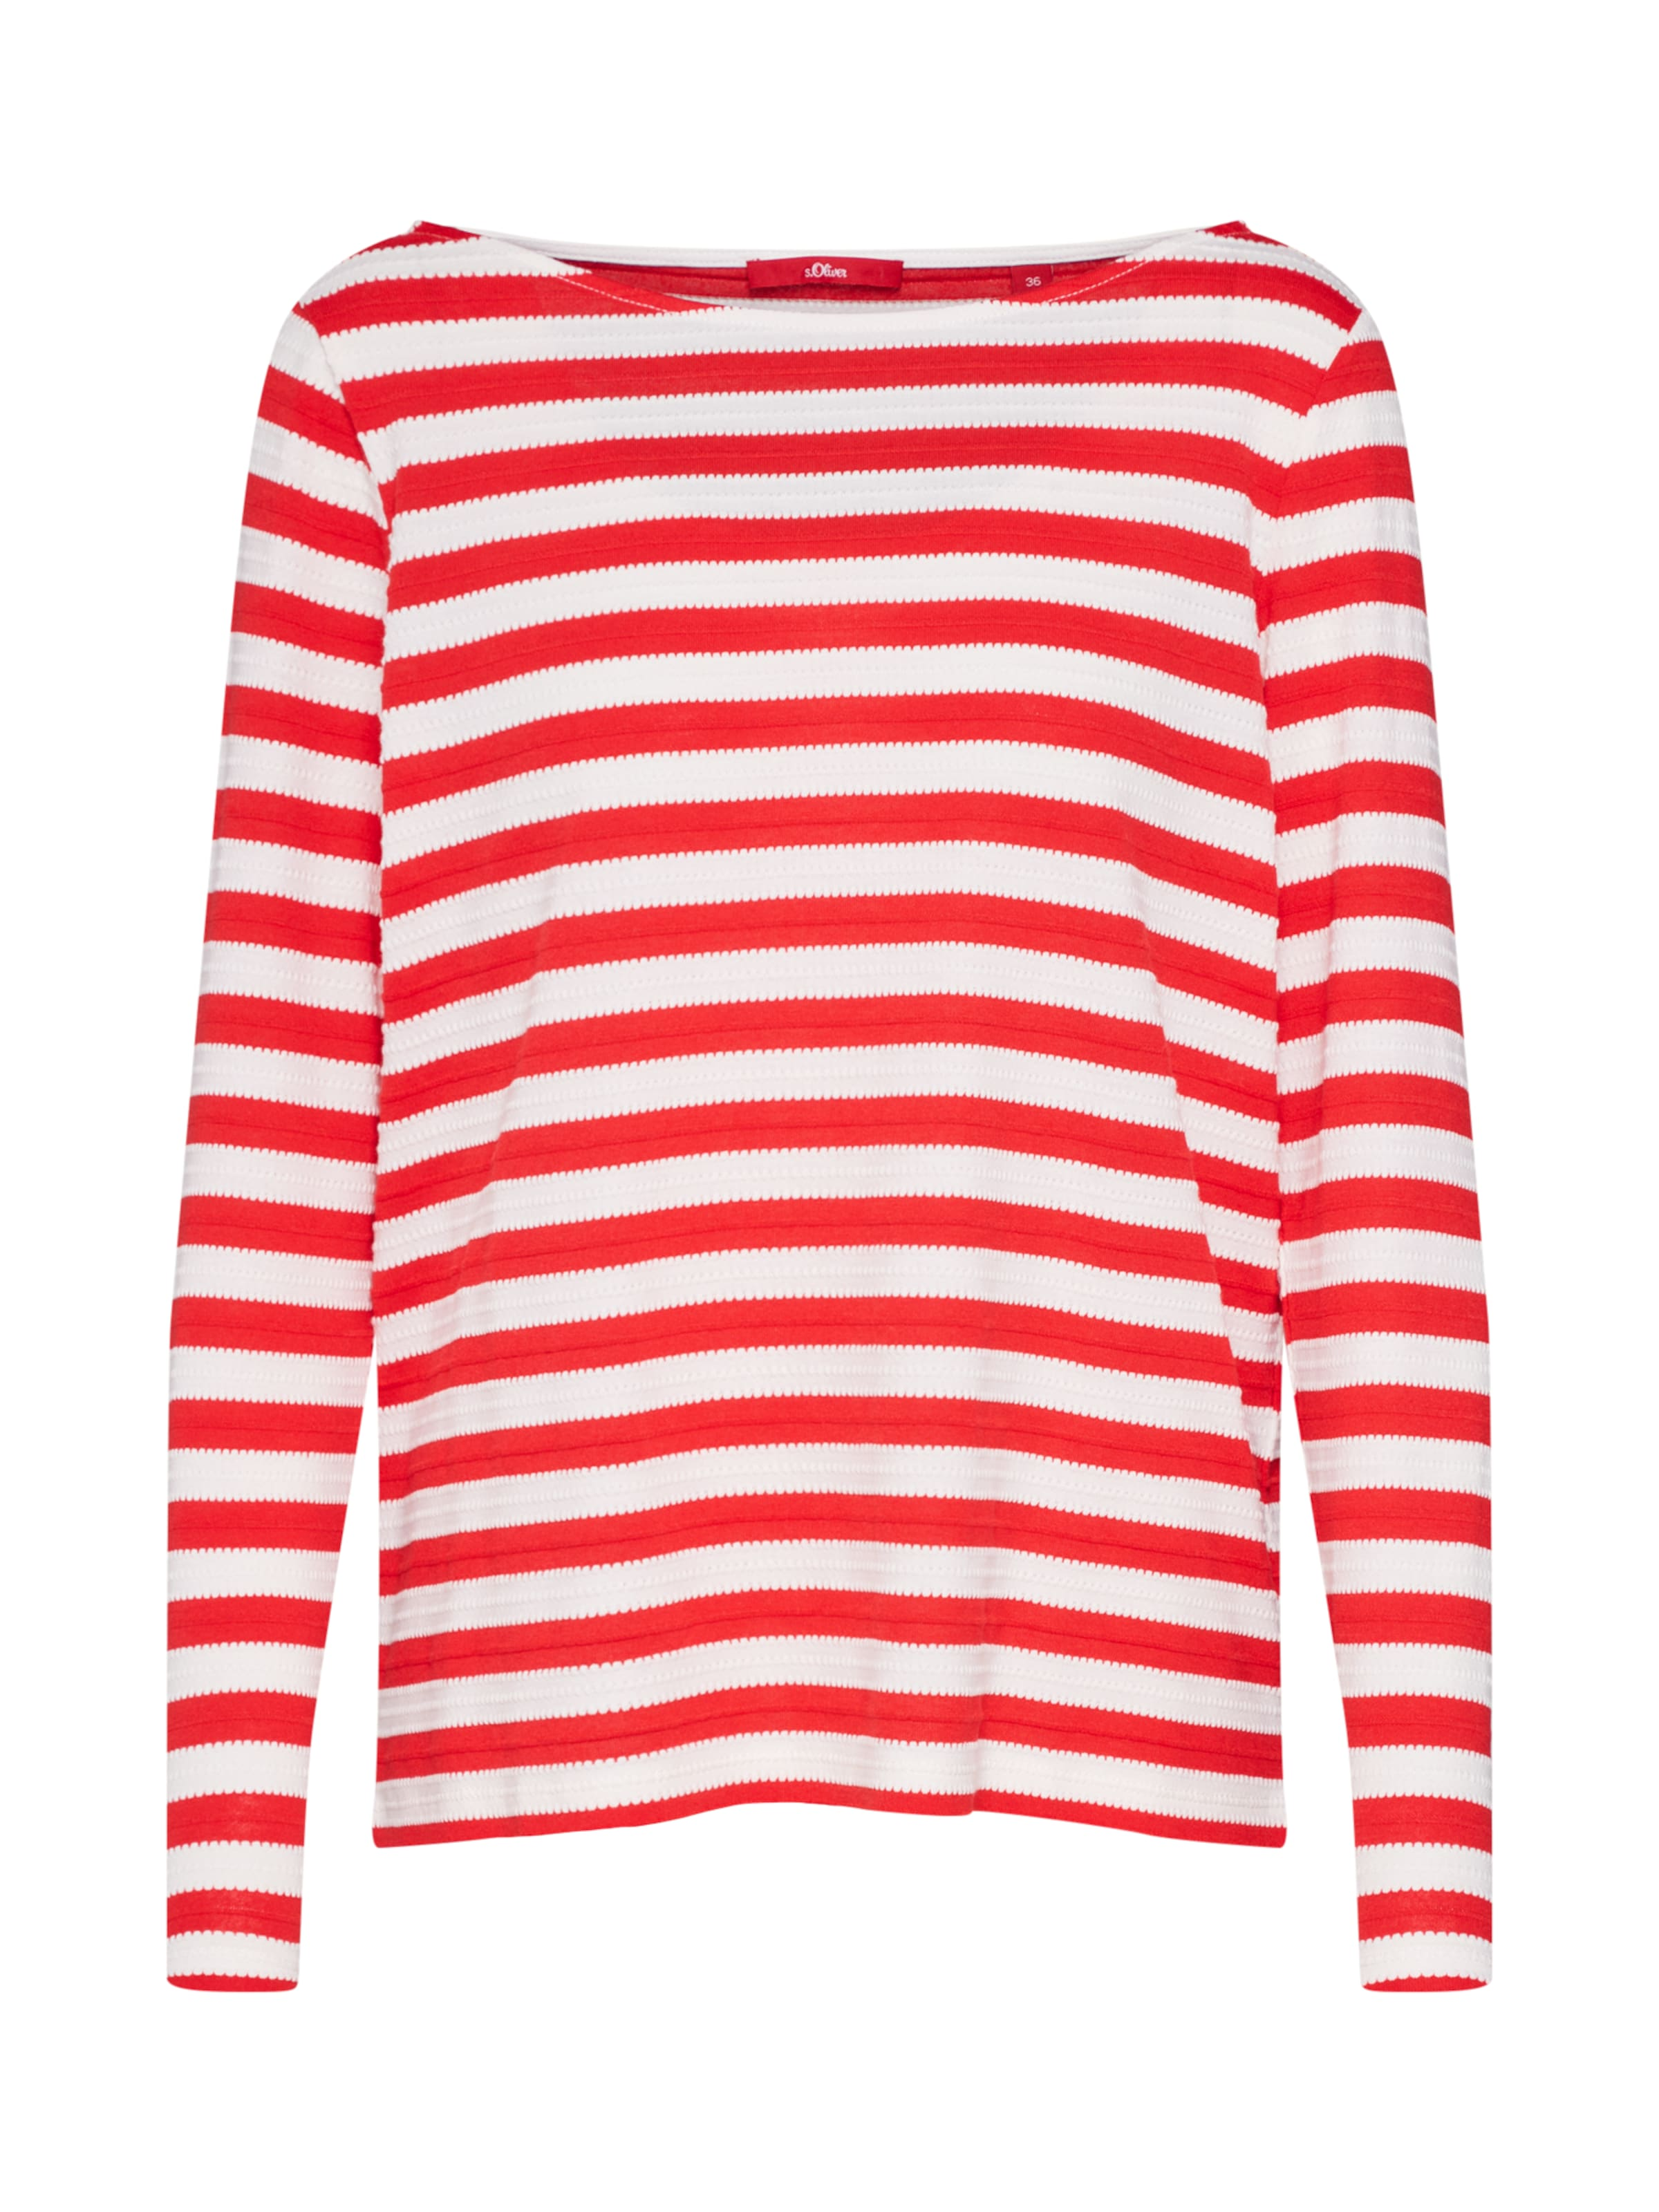 shirt En Label oliver JauneBlanc Red S T 9bWIeHD2YE